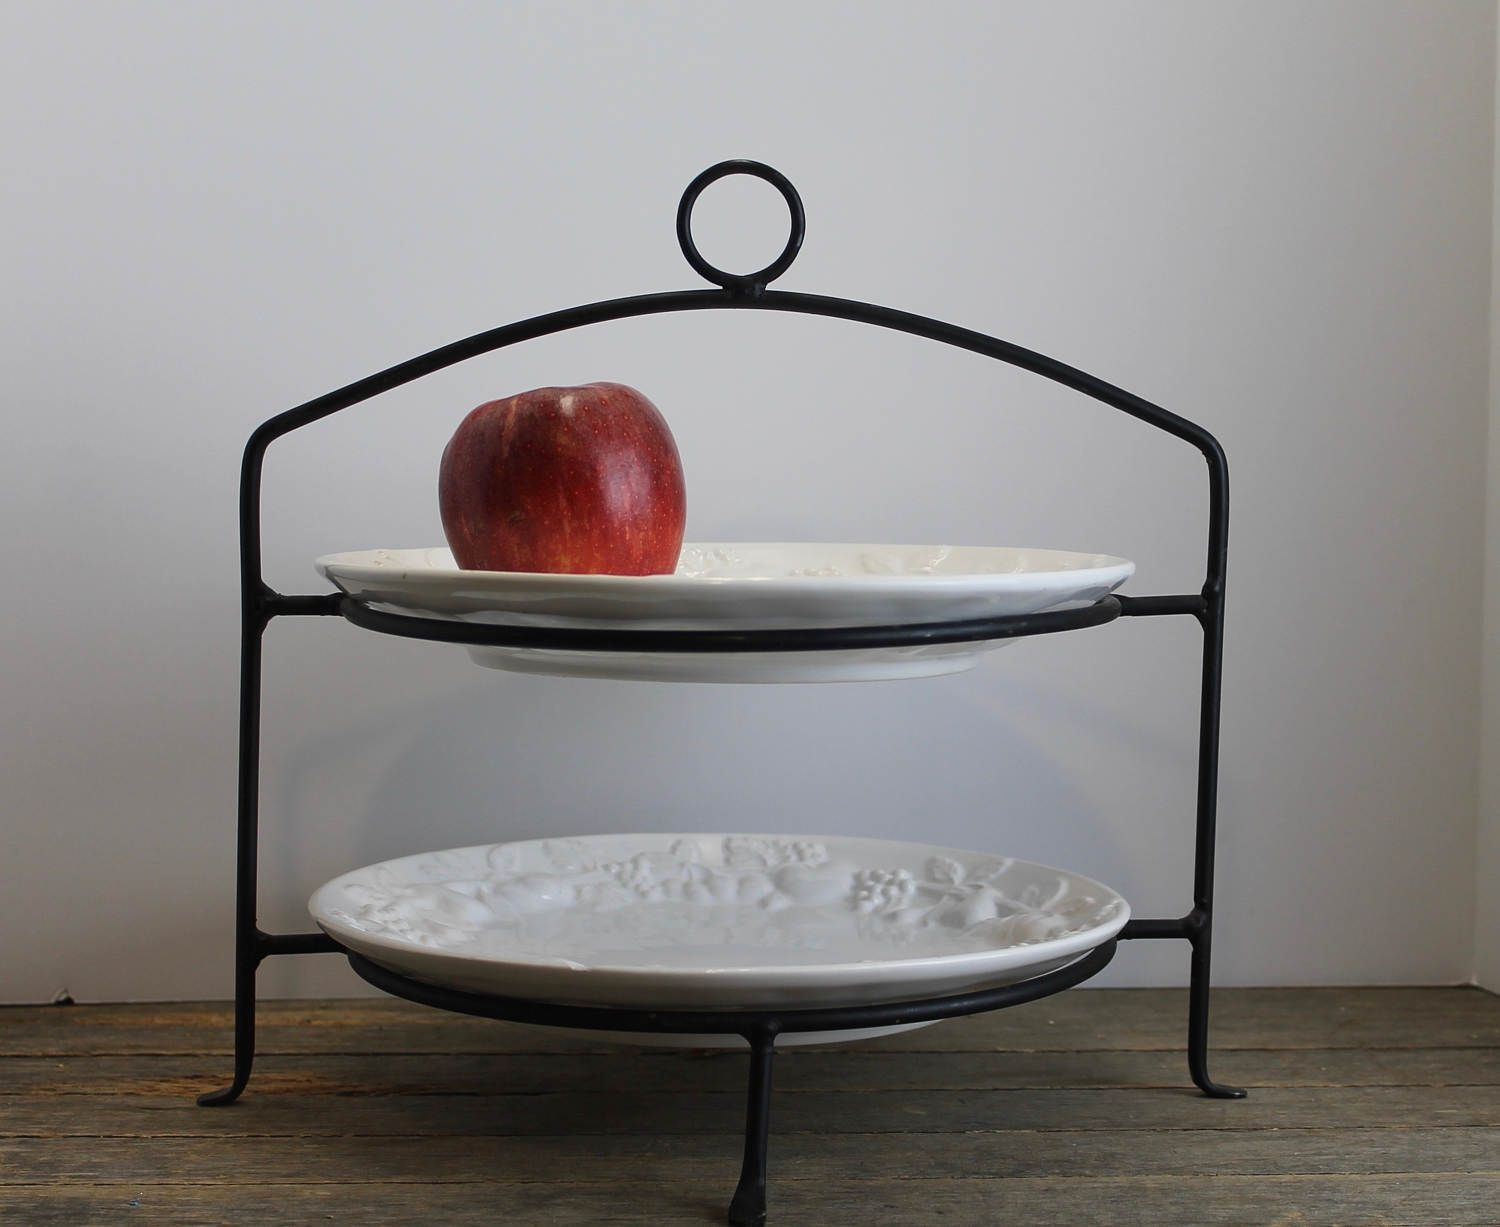 Vintage Wrought Iron 2 Tiered Pie Stand Plate Holder Display Rack // Buffet Table Server by MyBarn on Etsy & Vintage Wrought Iron 2 Tiered Pie Stand Plate Holder Display Rack ...